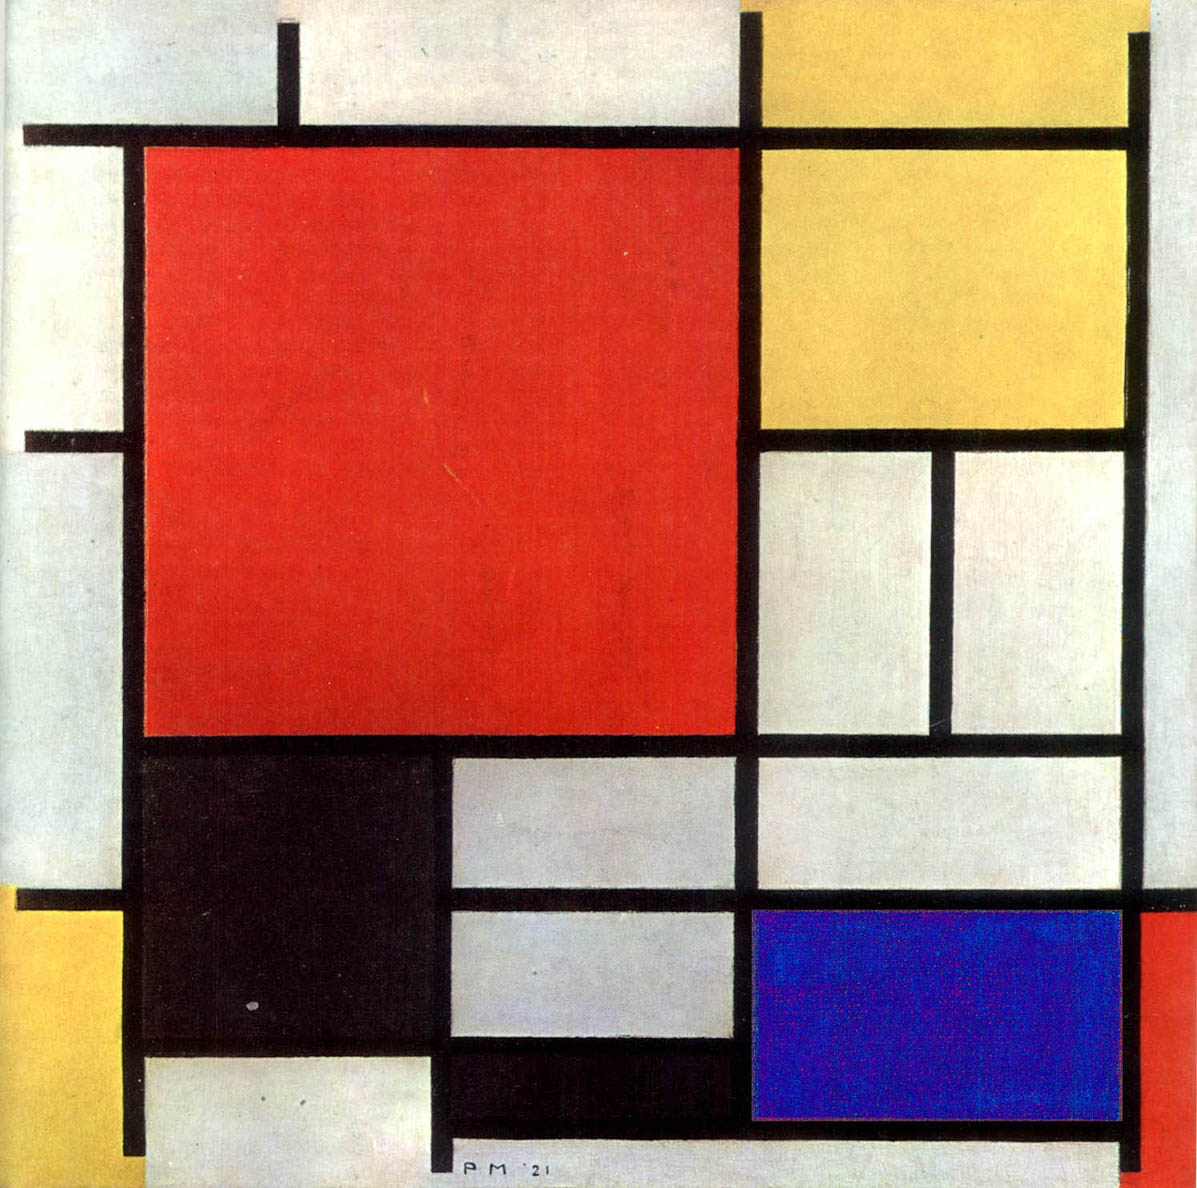 Piet Mondrian on What Fraction Of Shape Is Colored